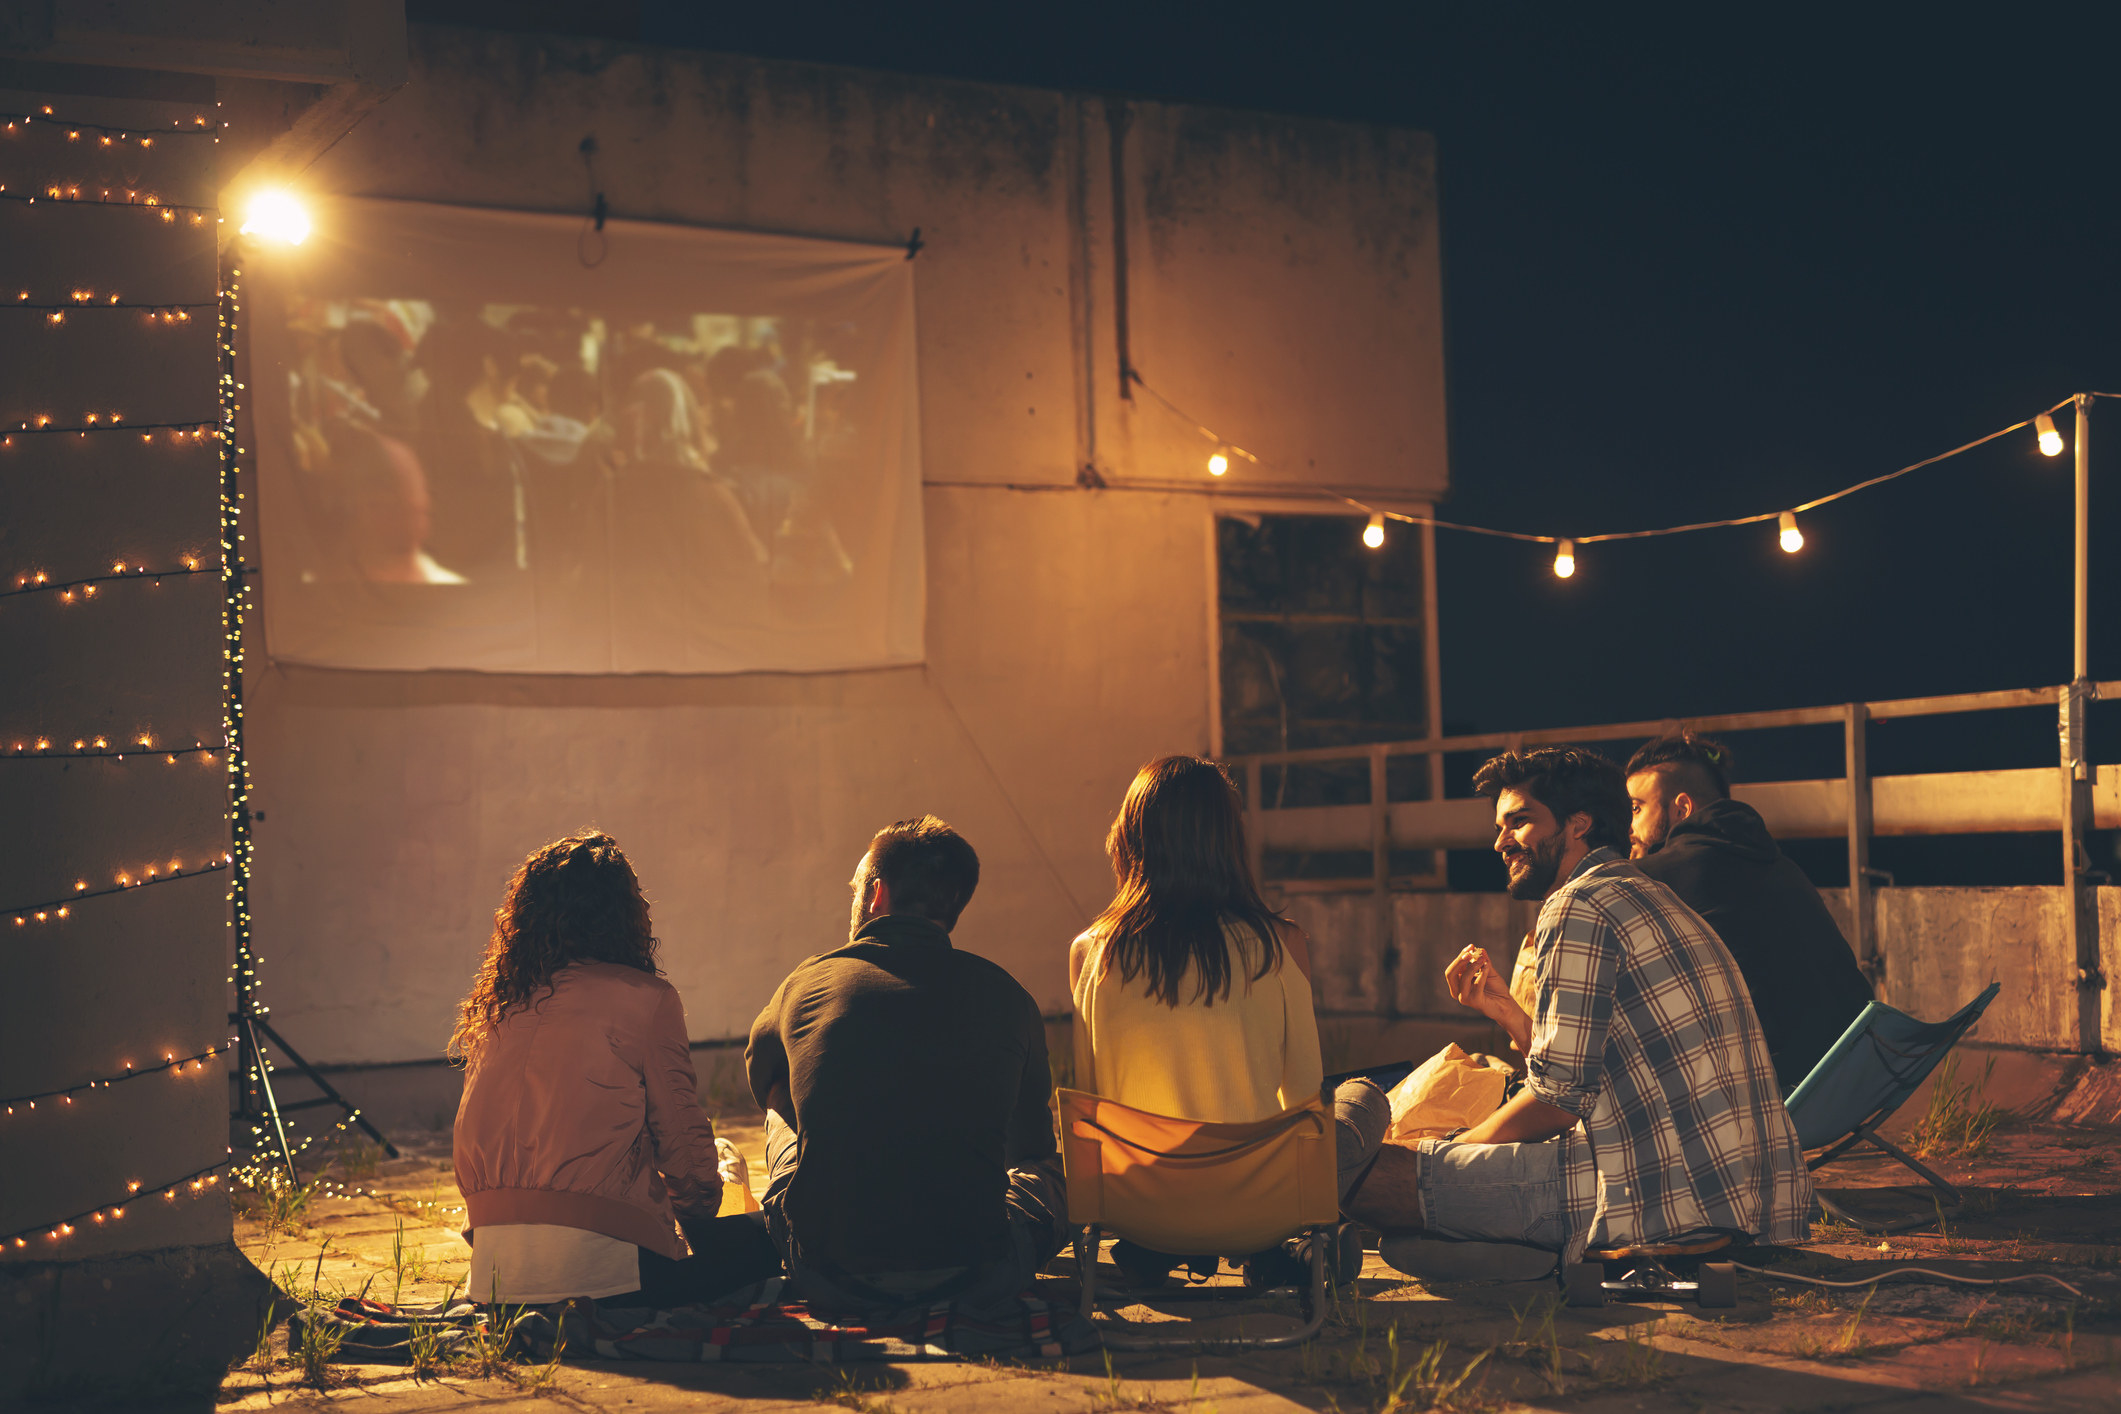 Friends watching a movie on a projector screen.